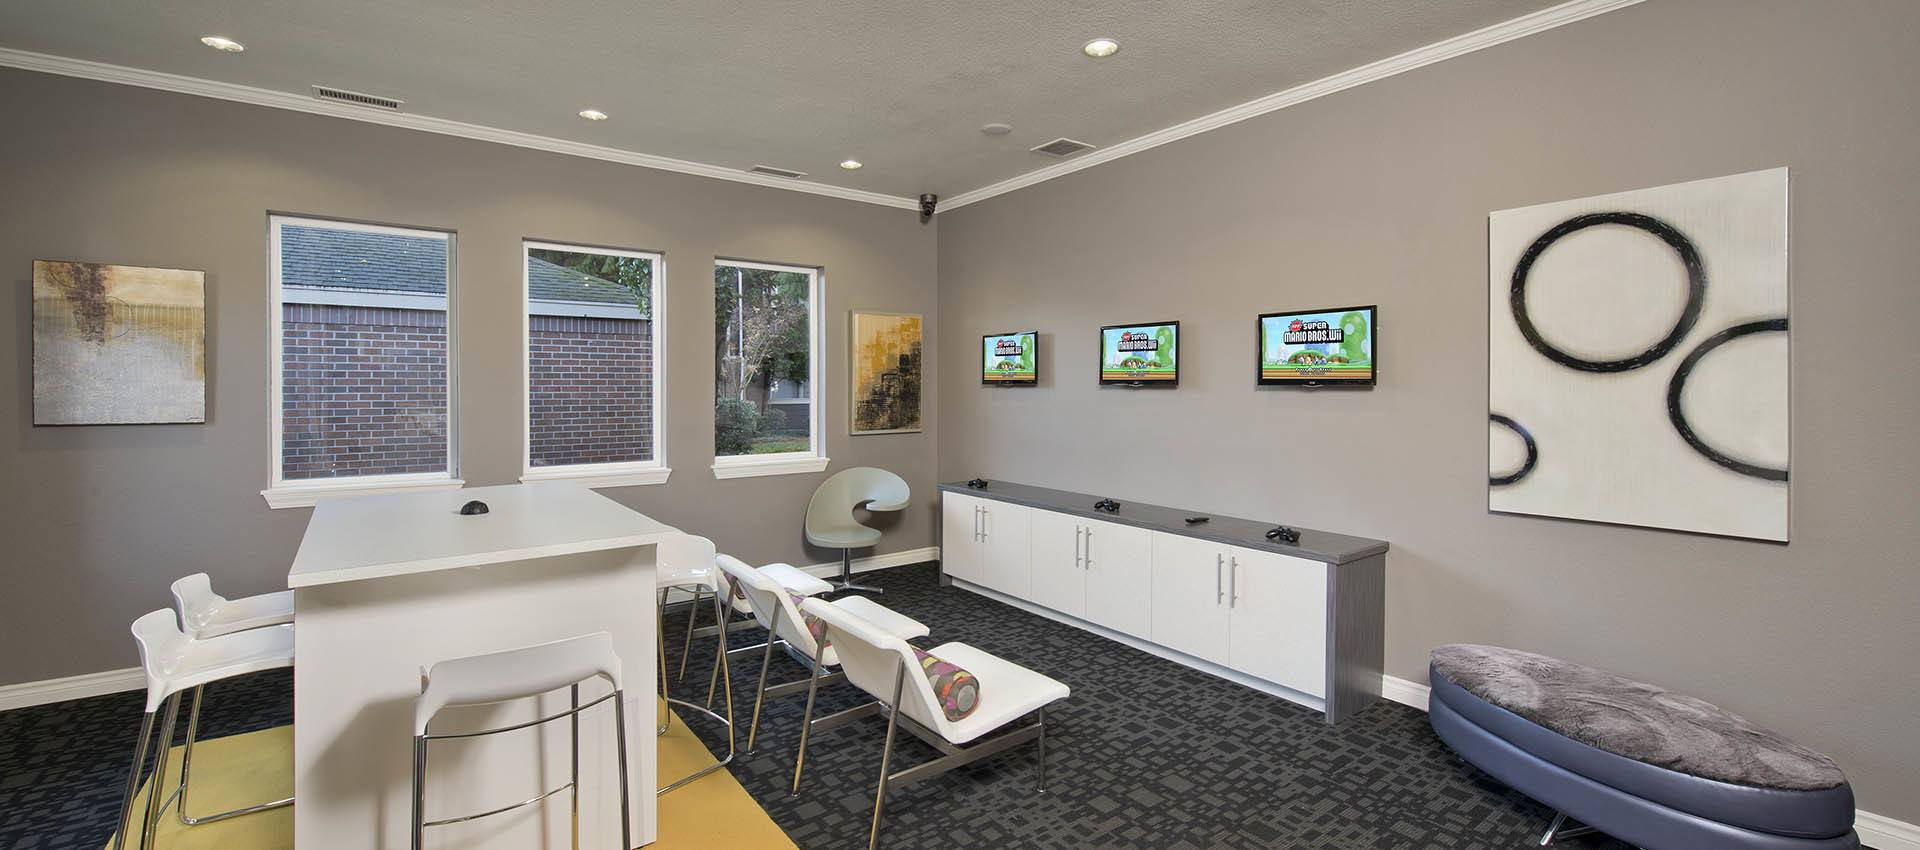 Game room at Cortland Village Apartment Homes in Hillsboro, OR